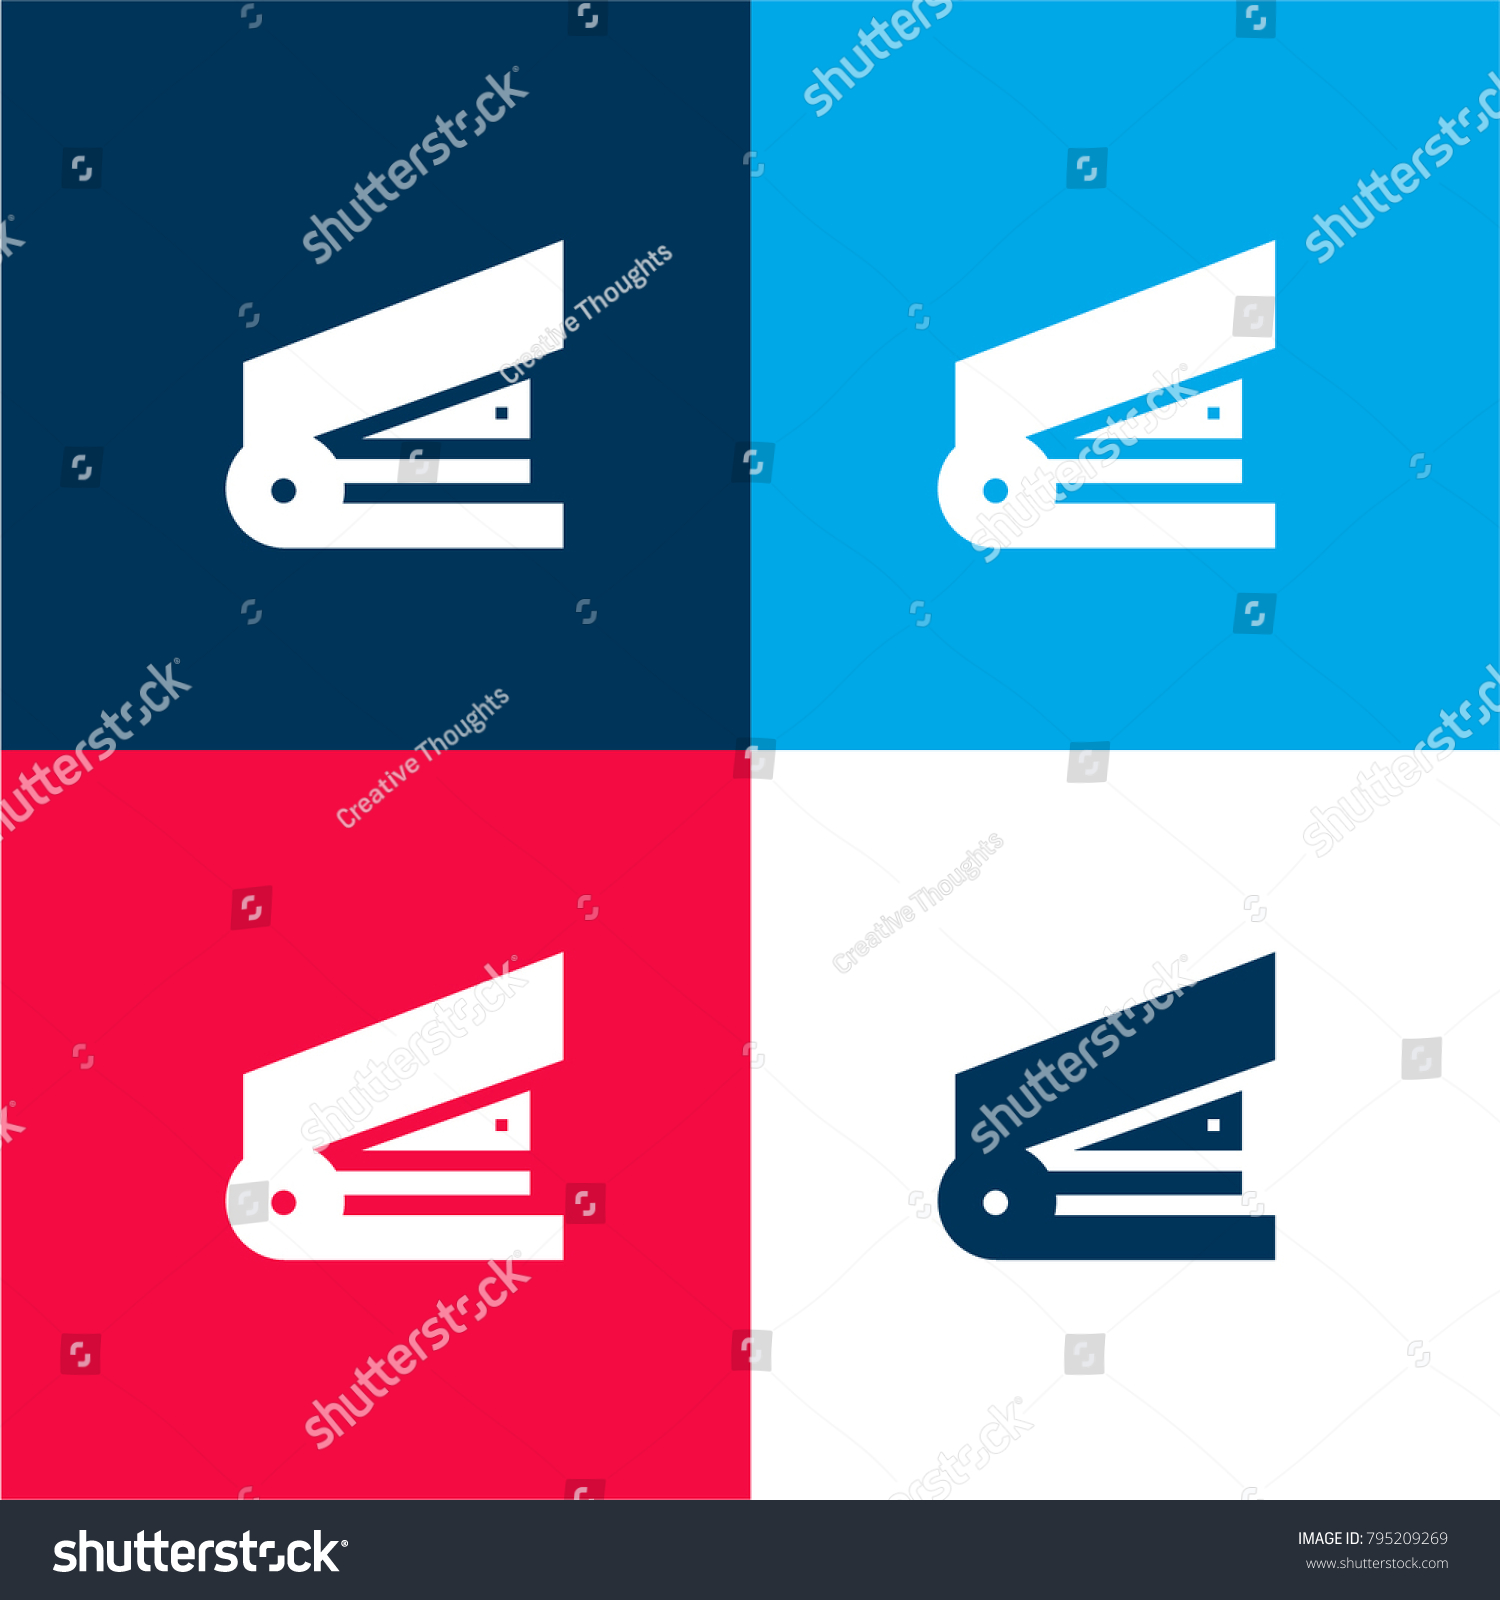 Stapler Four Color Material Minimal Icon Stock Vector HD (Royalty ...